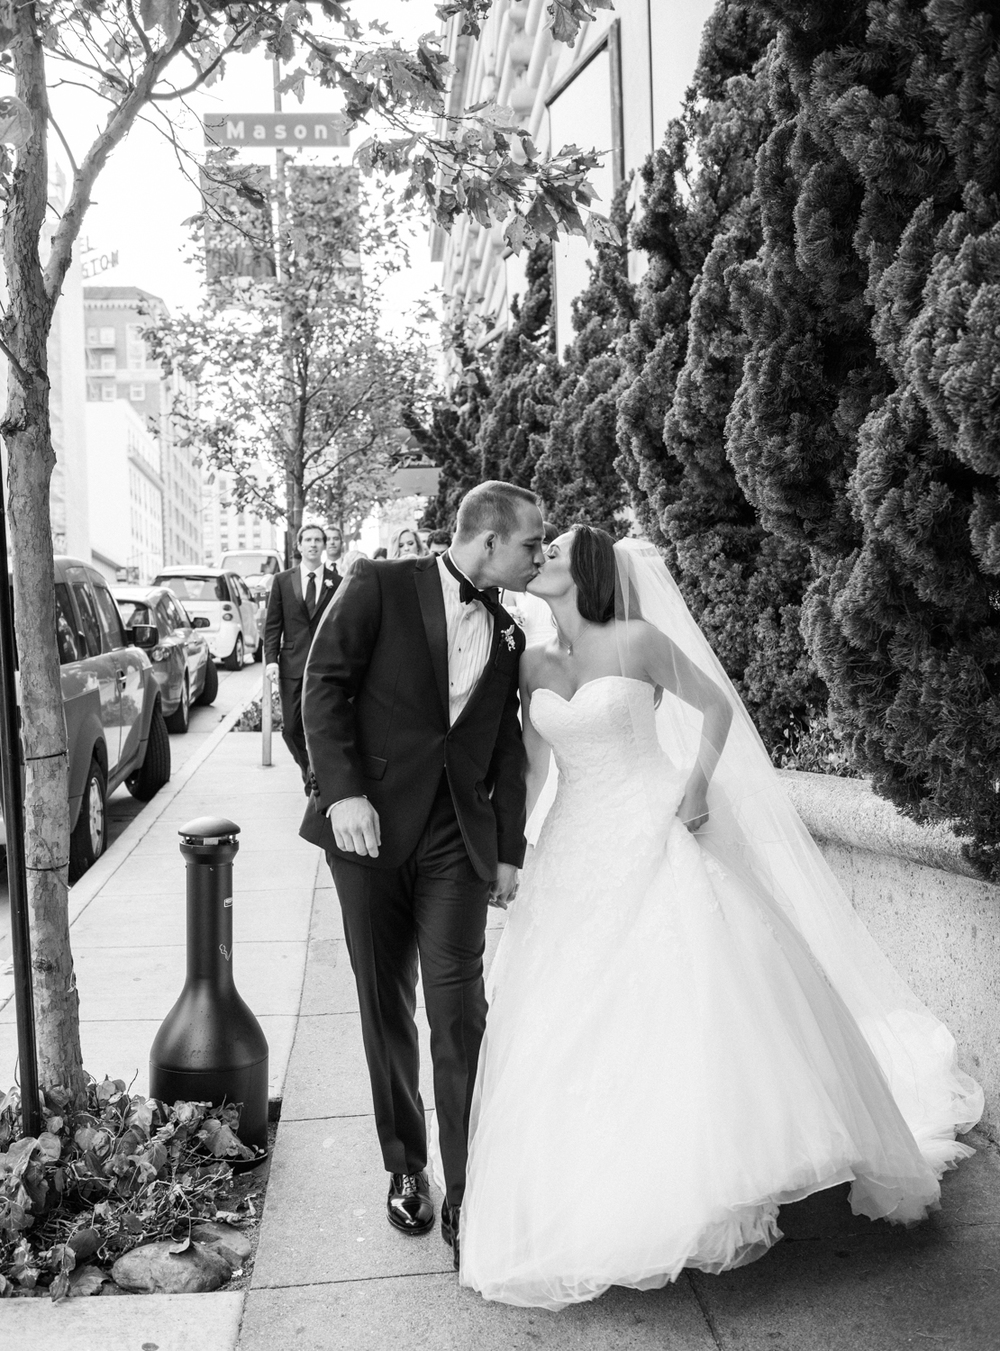 Leading their groomsmen and bridesmaids, Meg & Ben walk down a San Francisco sidewalk toward the camera; photo by Sylvie Gil